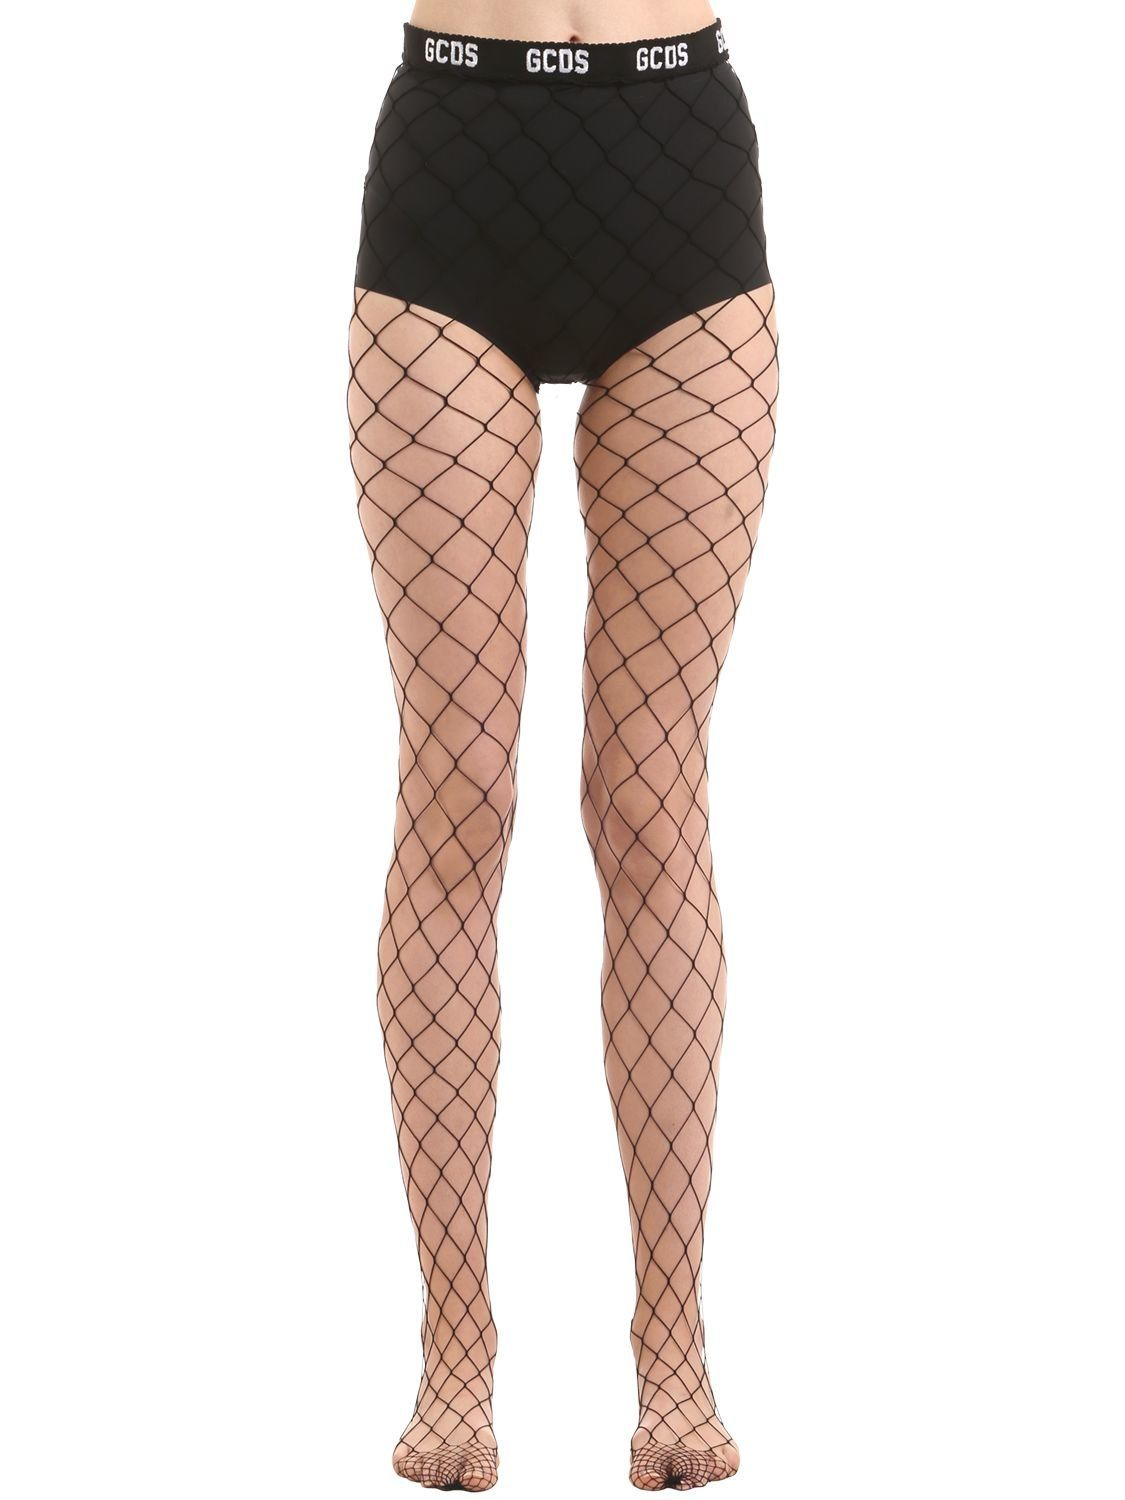 332f60acc GCDS BIG FISHNET STOCKINGS.  gcds  cloth